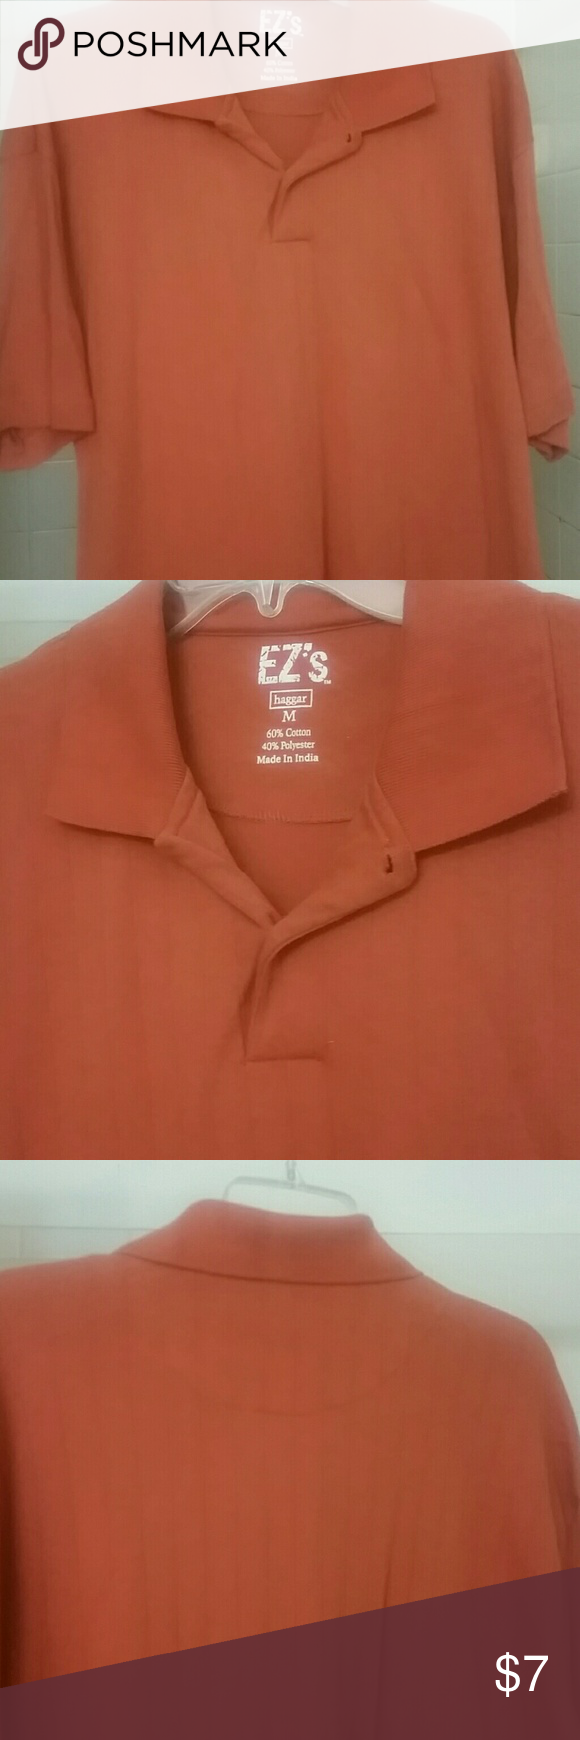 987914e86 Haggar Men s Shirt Burnt orange mens short sleeve polo shirt. Excellent  condition. Threaded piping. Length is 28 1 2 inches Haggar Shirts Polos